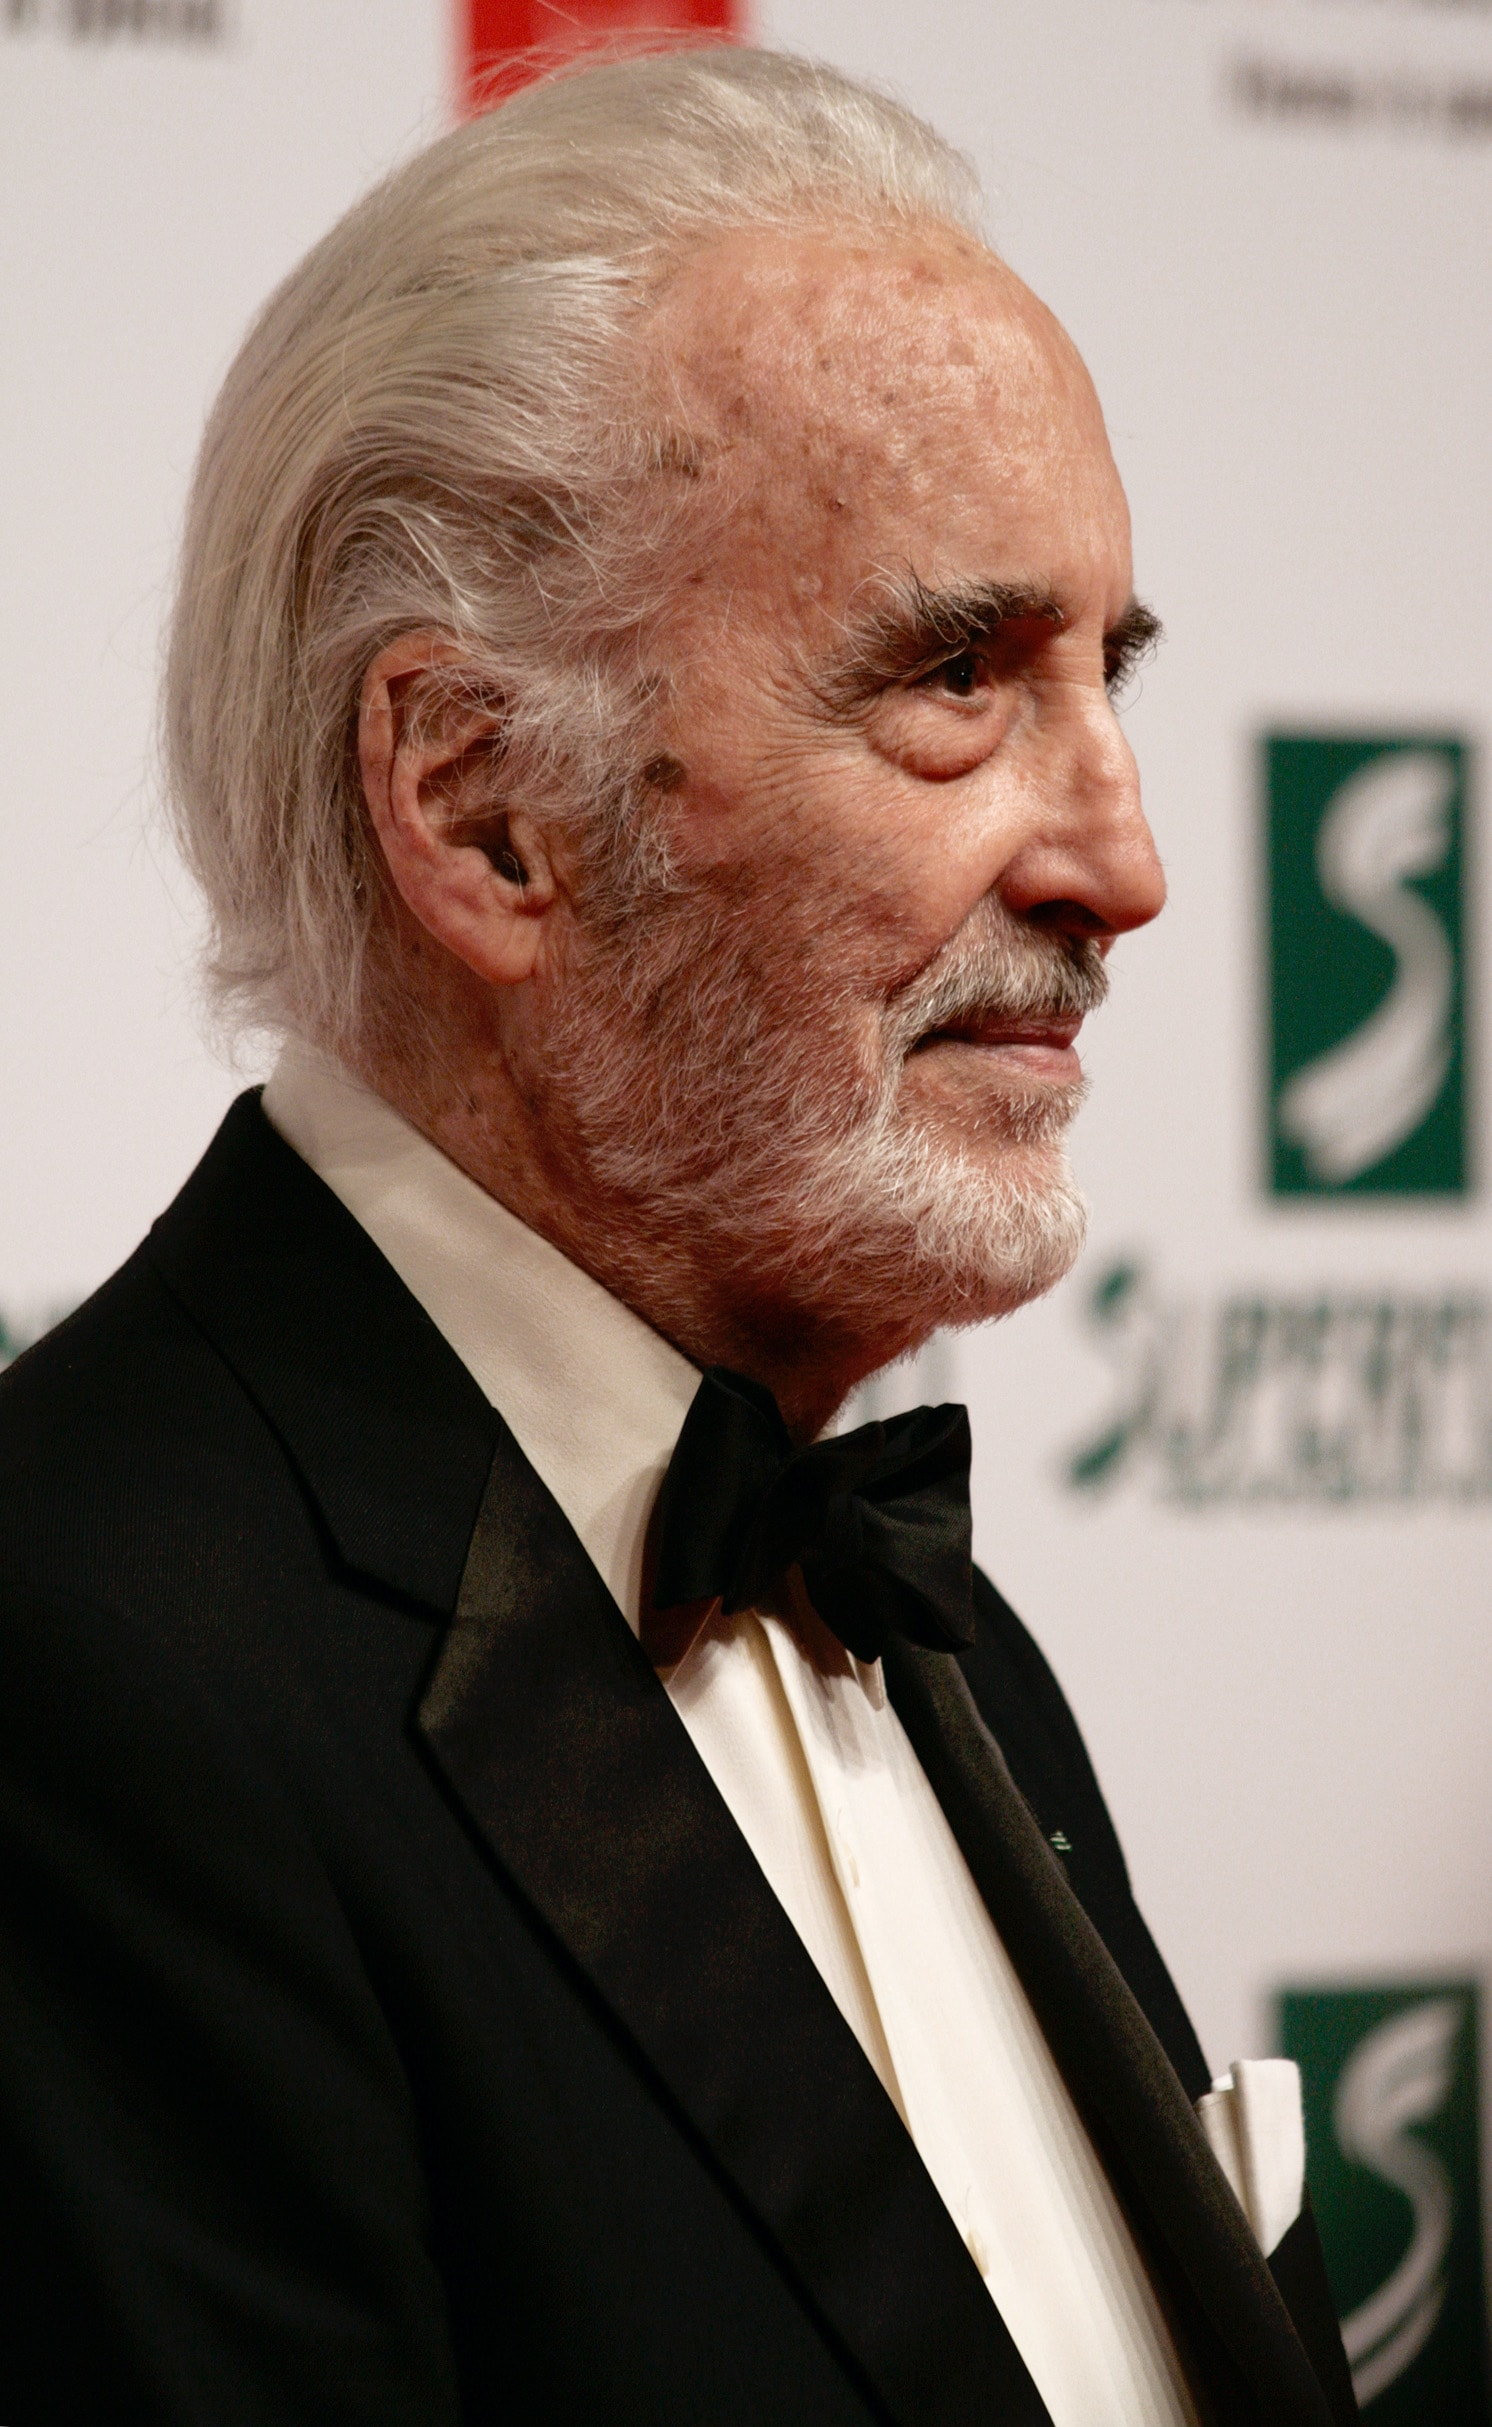 Christopher Lee HD Wallpapers | 7wallpapers.net